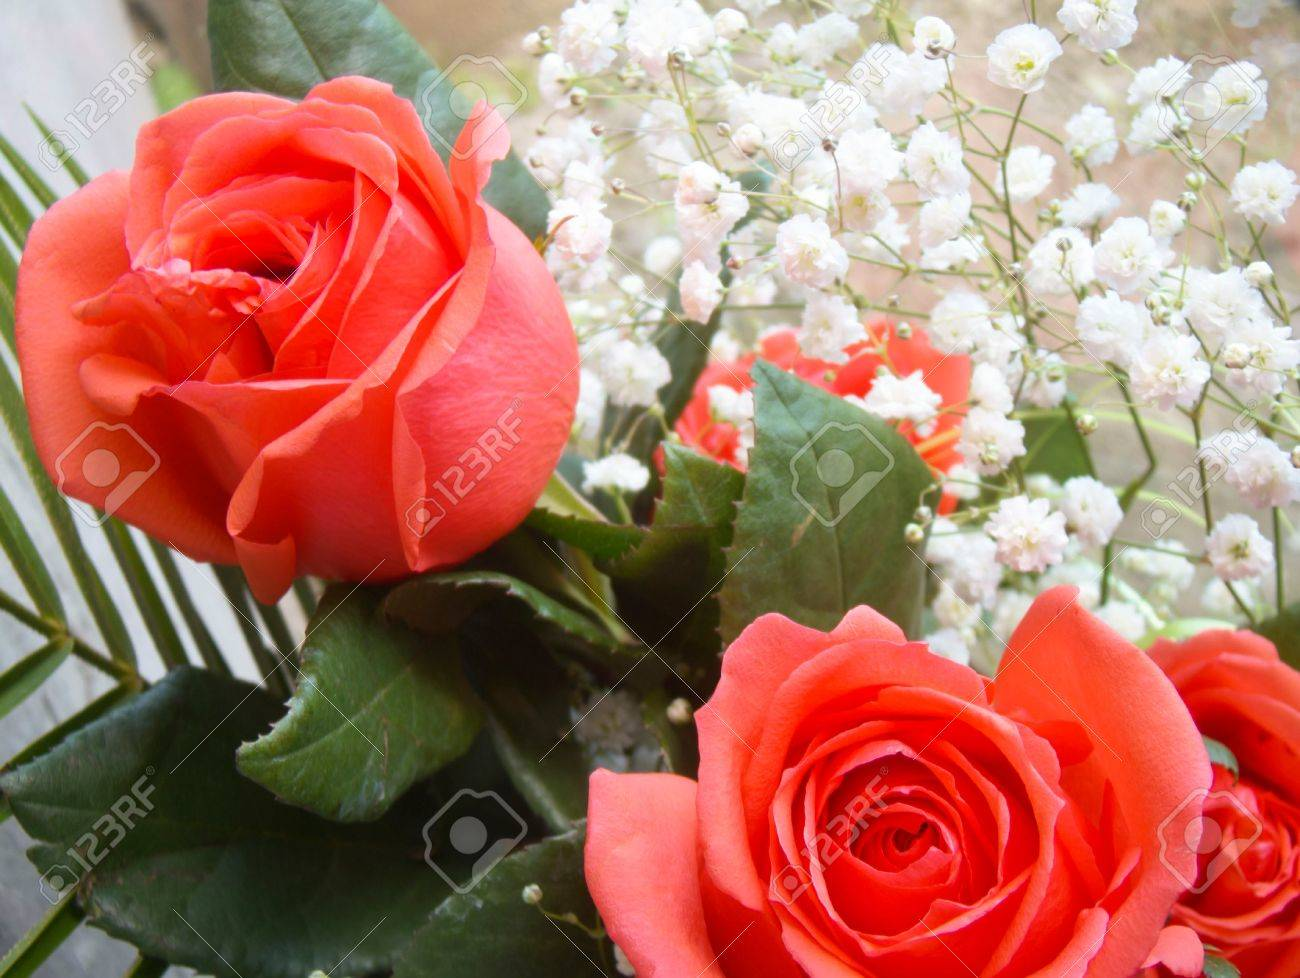 Soft Red Roses With Small White Flowers Background Stock Photo